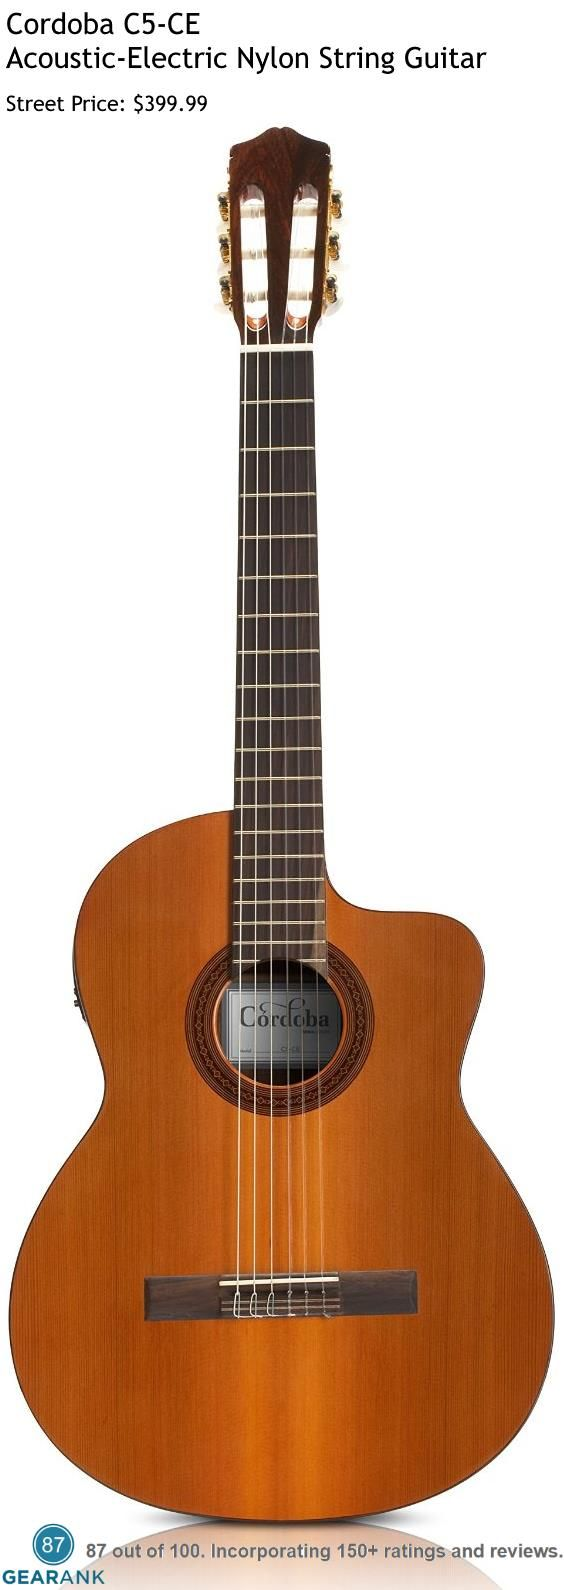 Cordoba C5-CE Acoustic-Electric Nylon String Guitar. Part of the Iberia series, the Cordoba C5-CE has a solid Canadian cedar top and mahogany body.  The Fishman Isys+ 2band pickup system produces a rich and natural sound when amplified - perfect for gigging and recording. For a detailed guide to Nylon String Guitars see https://www.gearank.com/guides/nylon-string-guitar